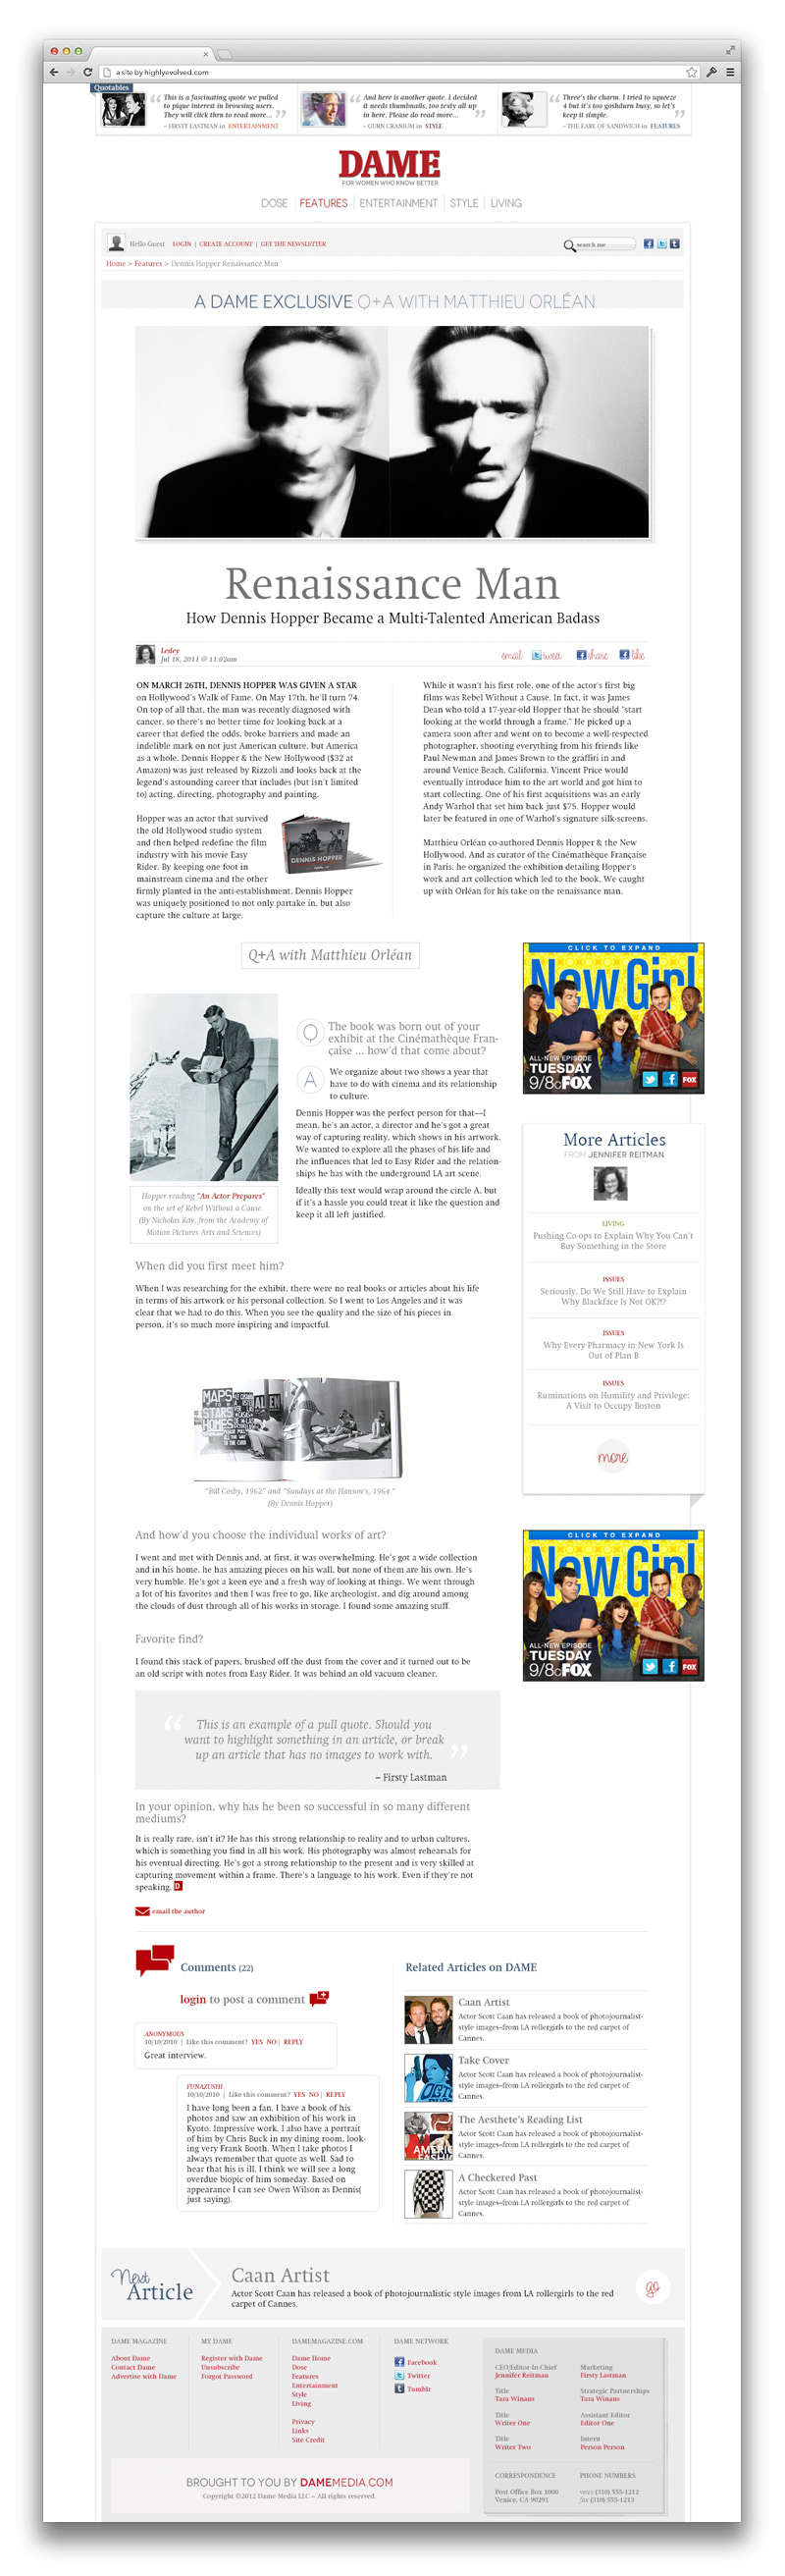 Dame Magazine - Featured Article Template